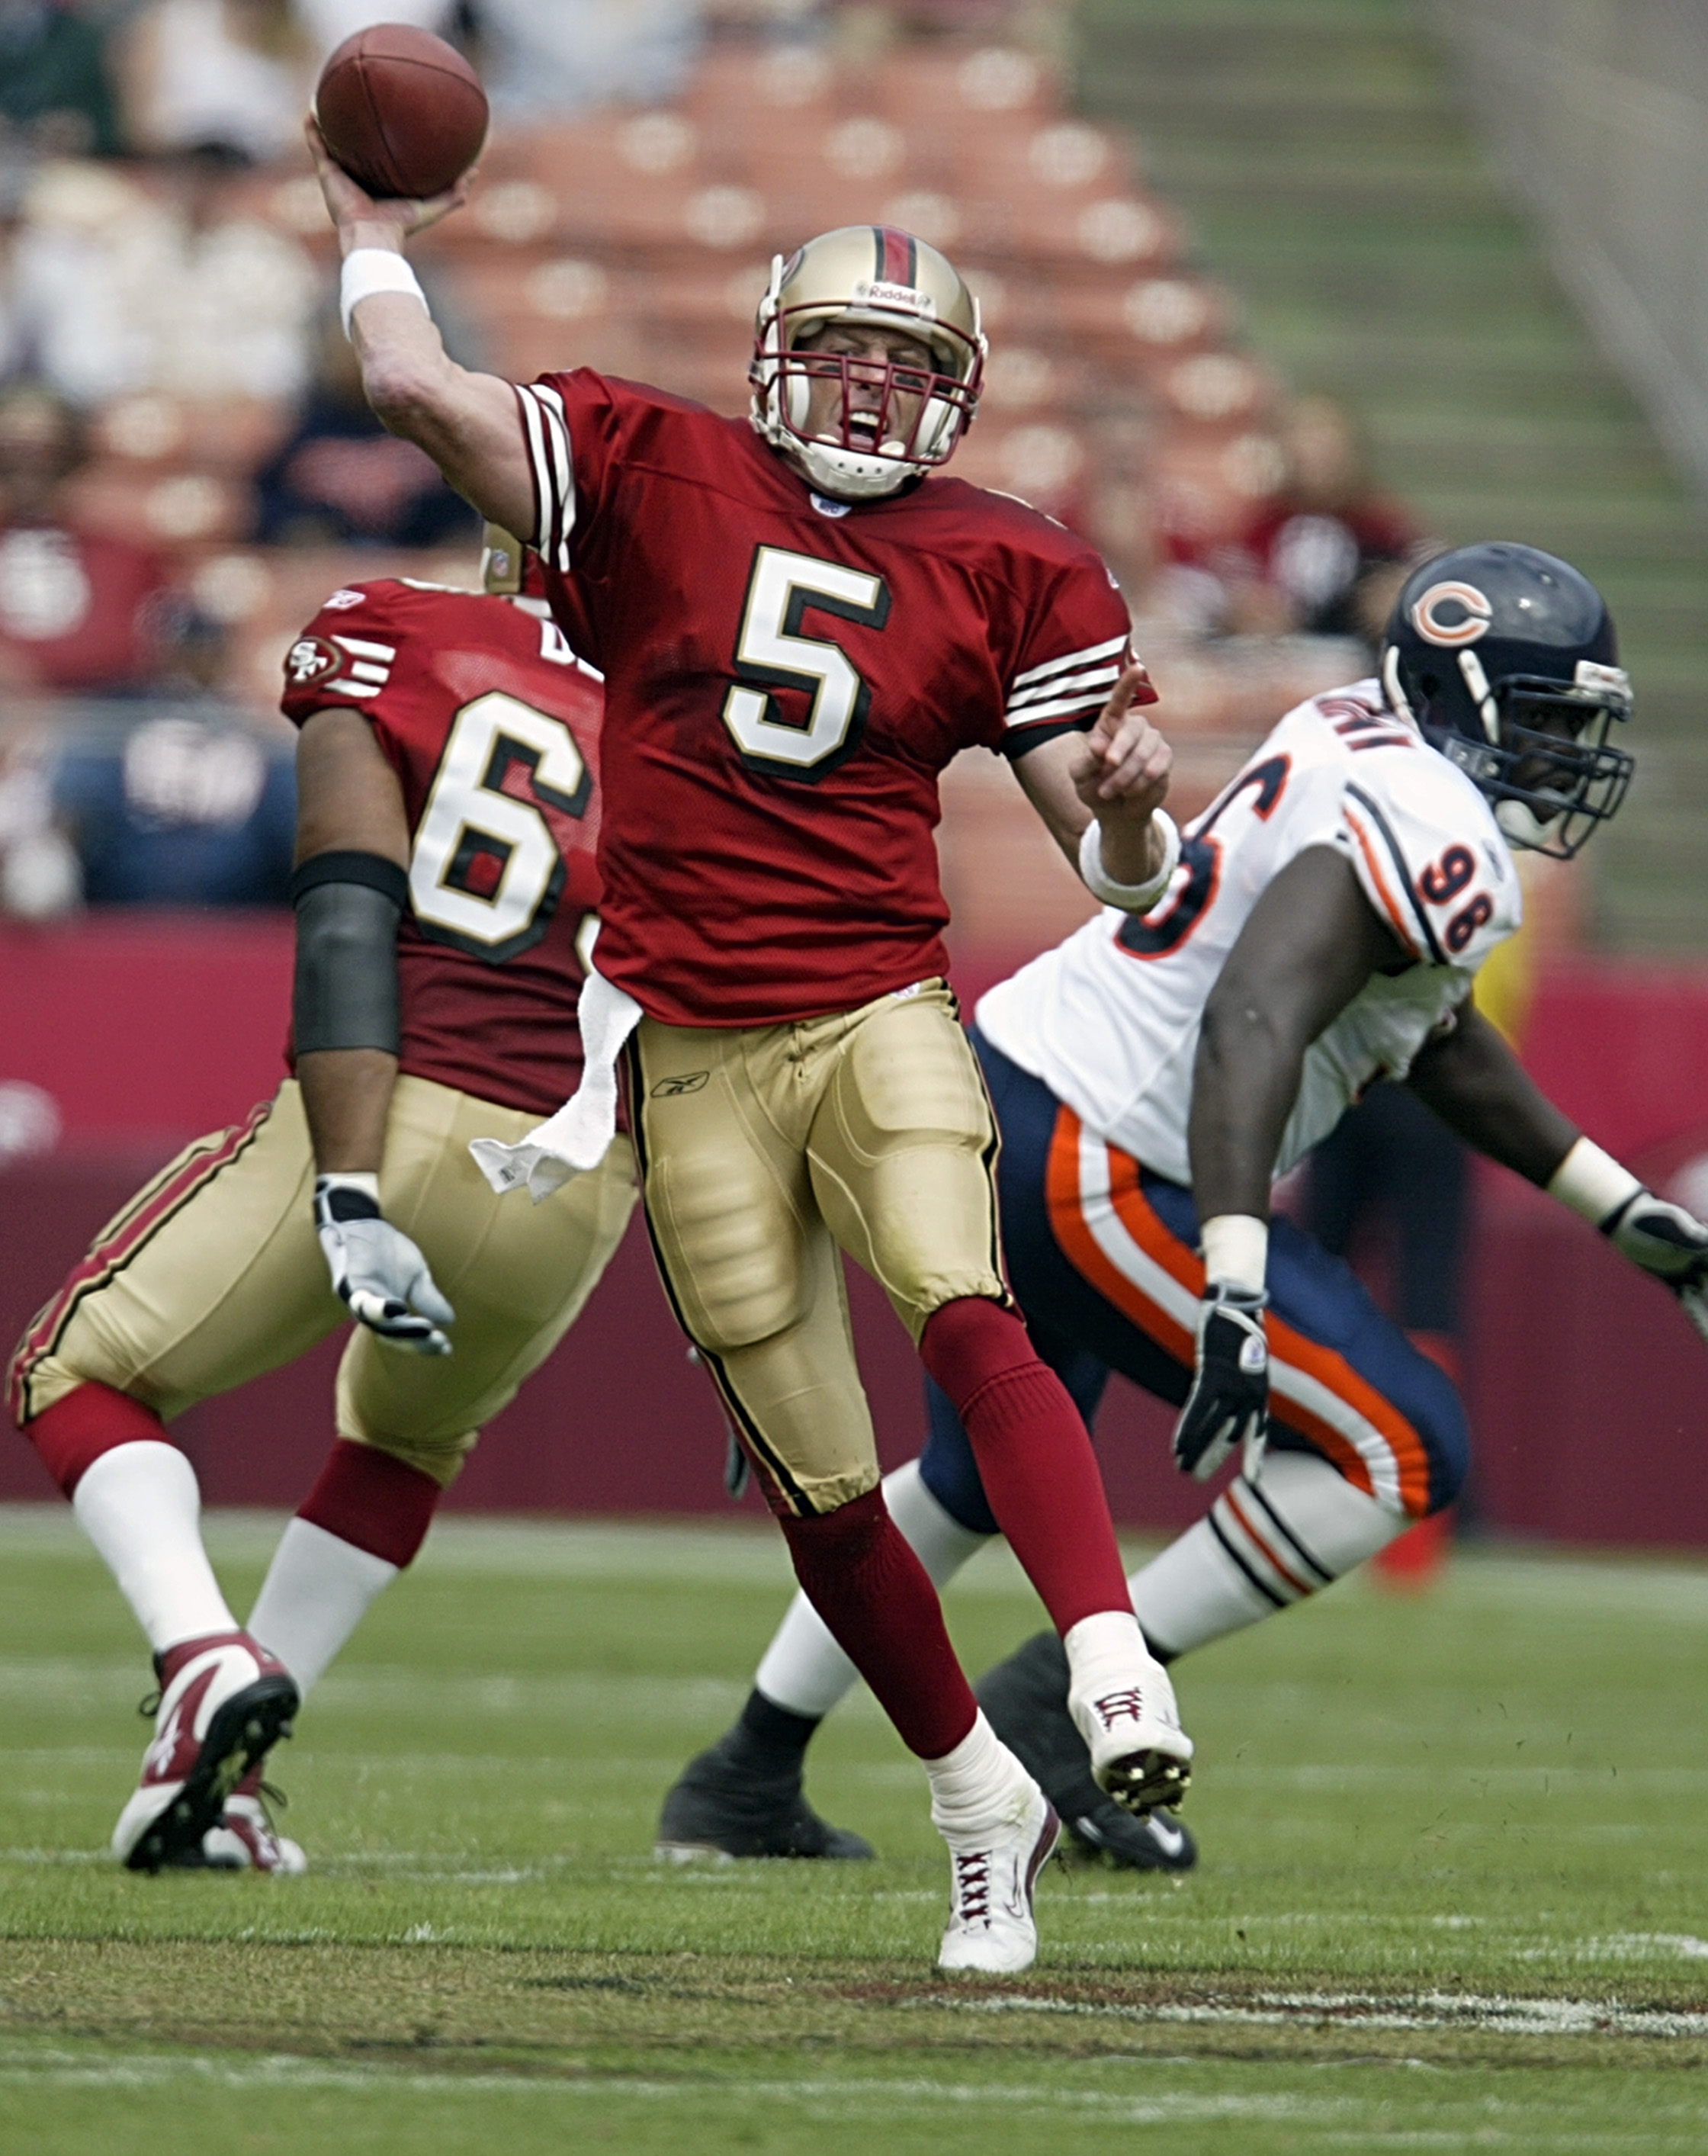 Jeff Garcia Throws A Pass Against The Bears